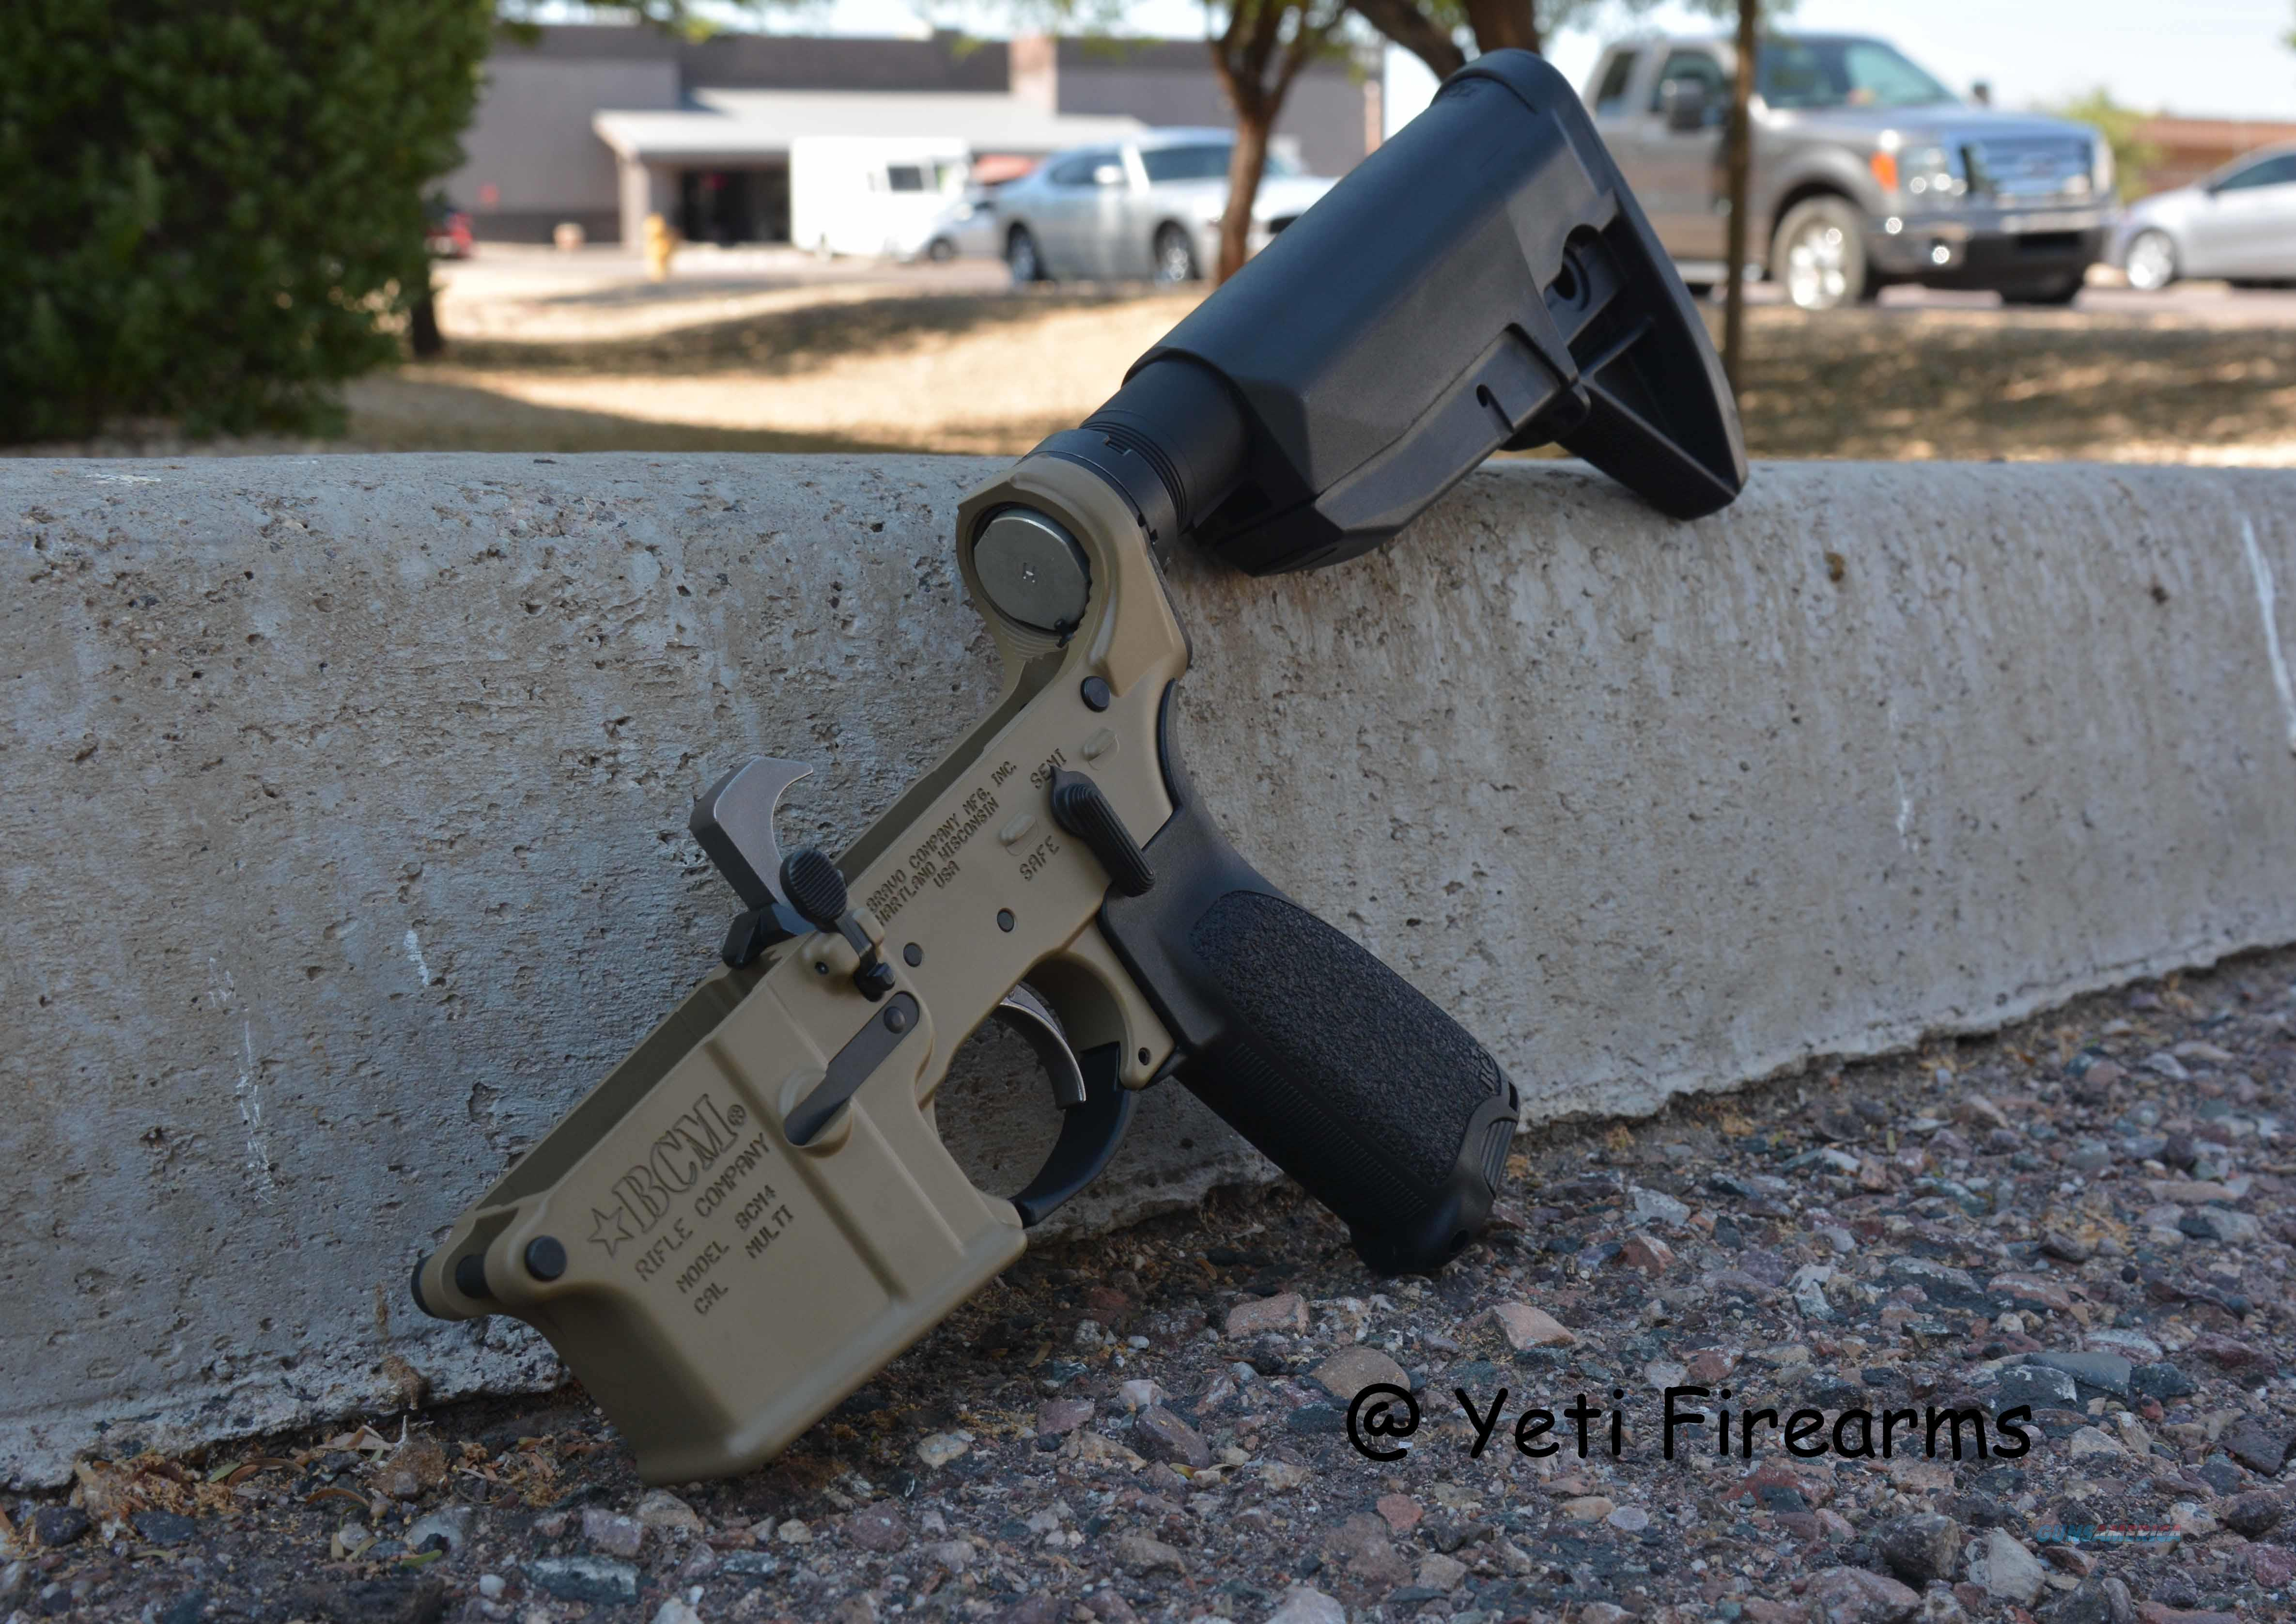 X-Werks BCM Complete BCM4 AR-15 Lower Blem CT 5.56  Guns > Rifles > AR-15 Rifles - Small Manufacturers > Lower Only